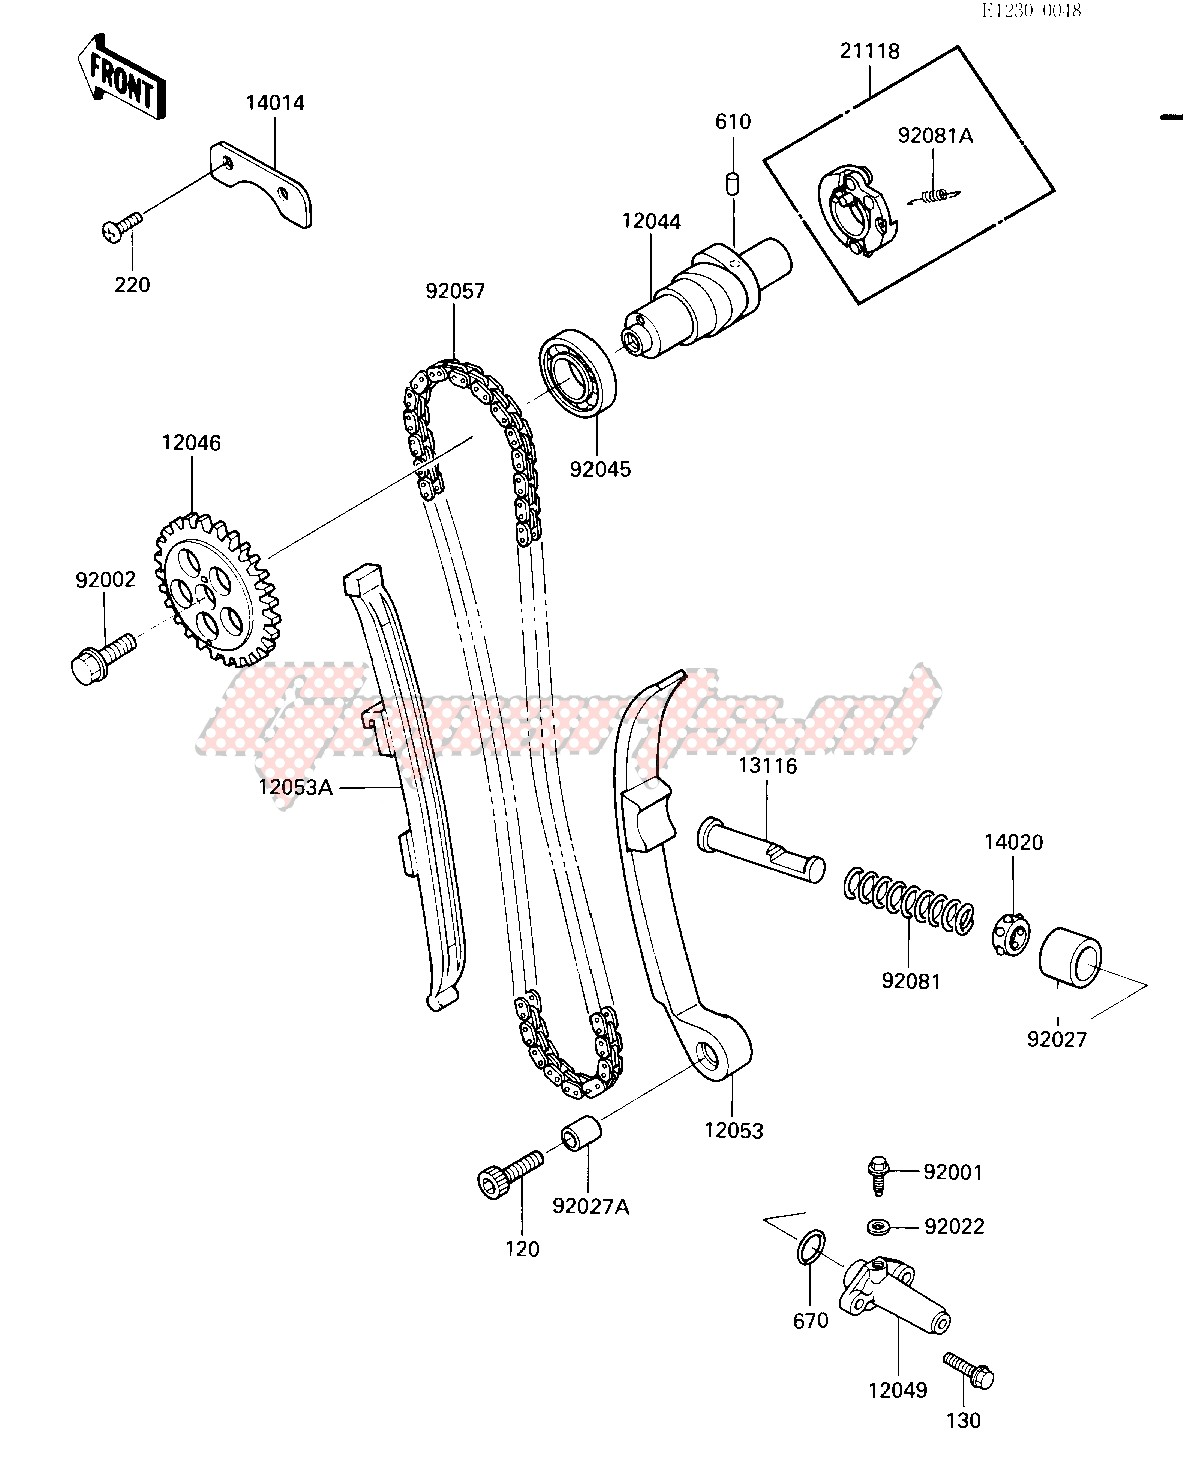 CAMSHAFT_CHAIN_TENSIONER image